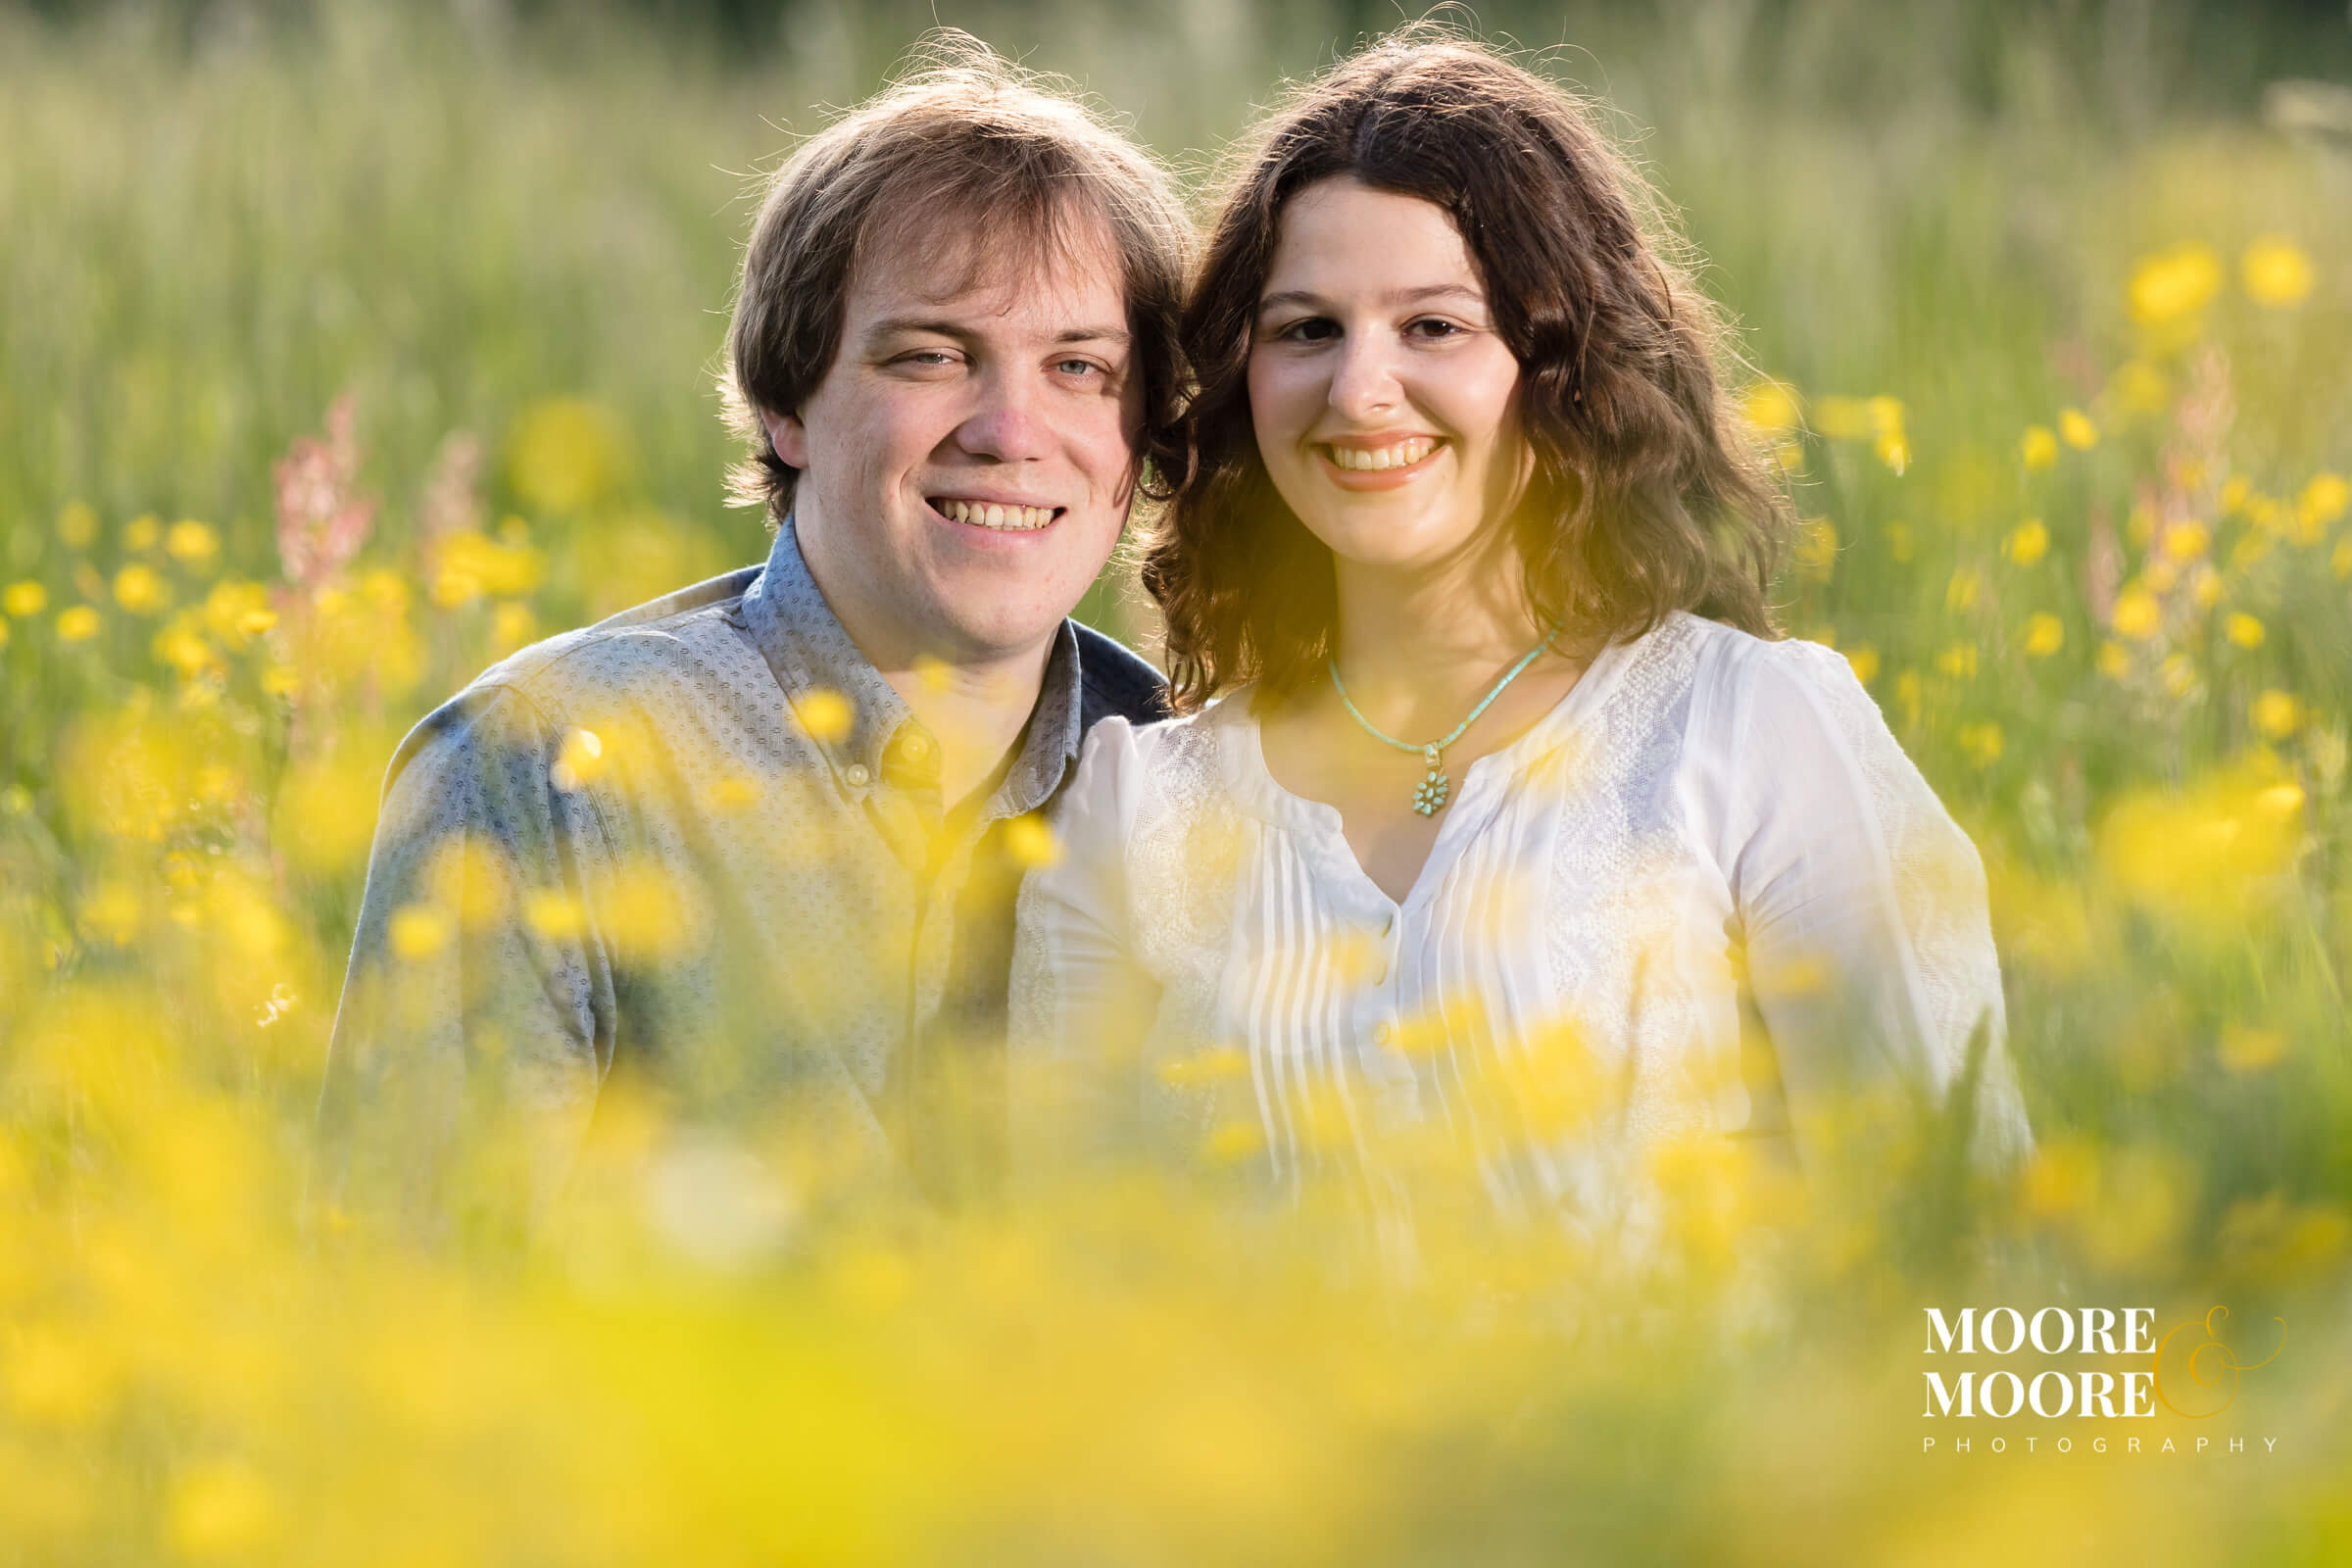 Amongst the buttercups, romantic engagement shoot in Hampshire by moore&moore photography